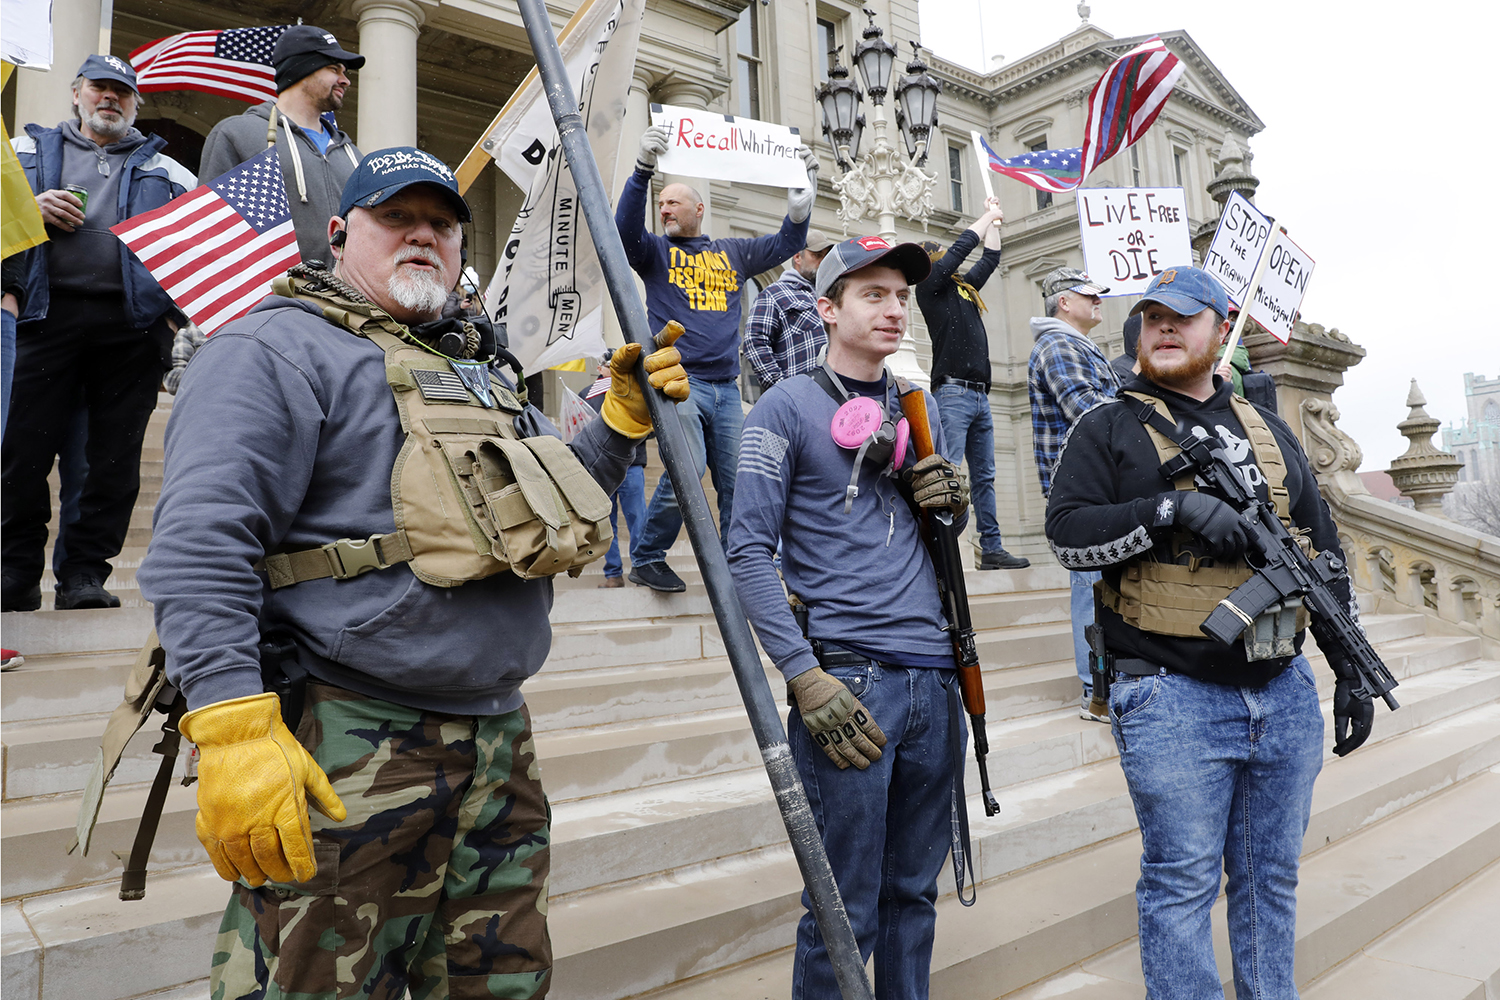 People take part in a protest for Michiganders Against Excessive Quarantine at the Michigan State Capitol in Lansing on April 15. JEFF KOWALSKY/AFP via Getty Images